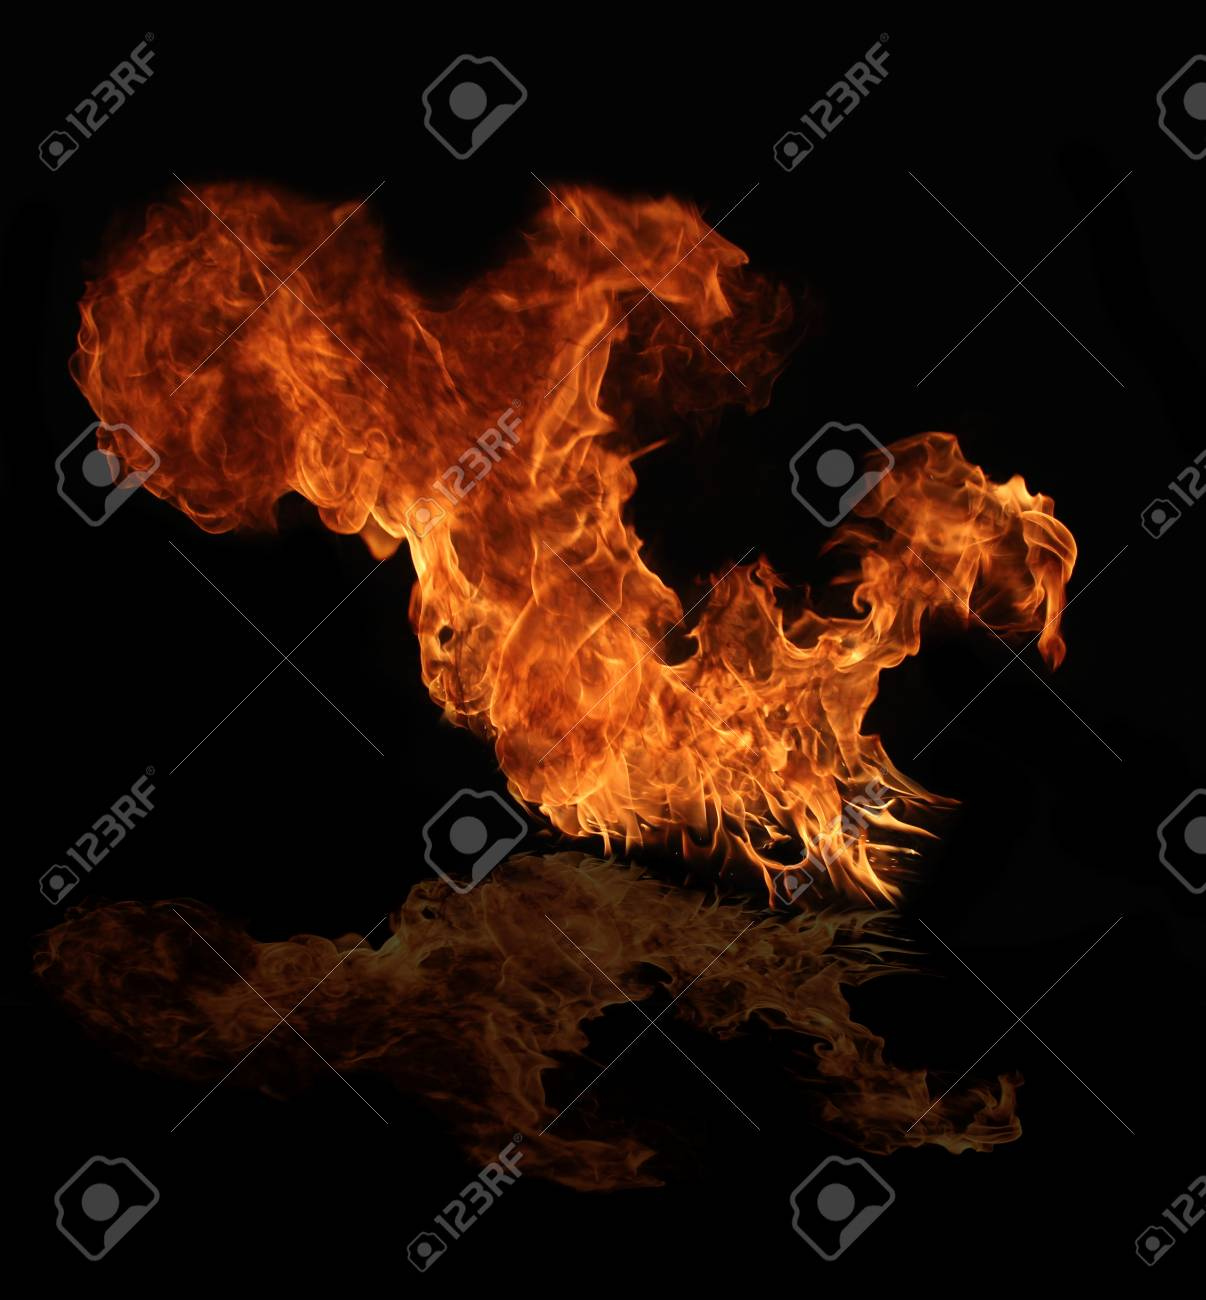 Fire flame with water reflection Stock Photo - 12574432